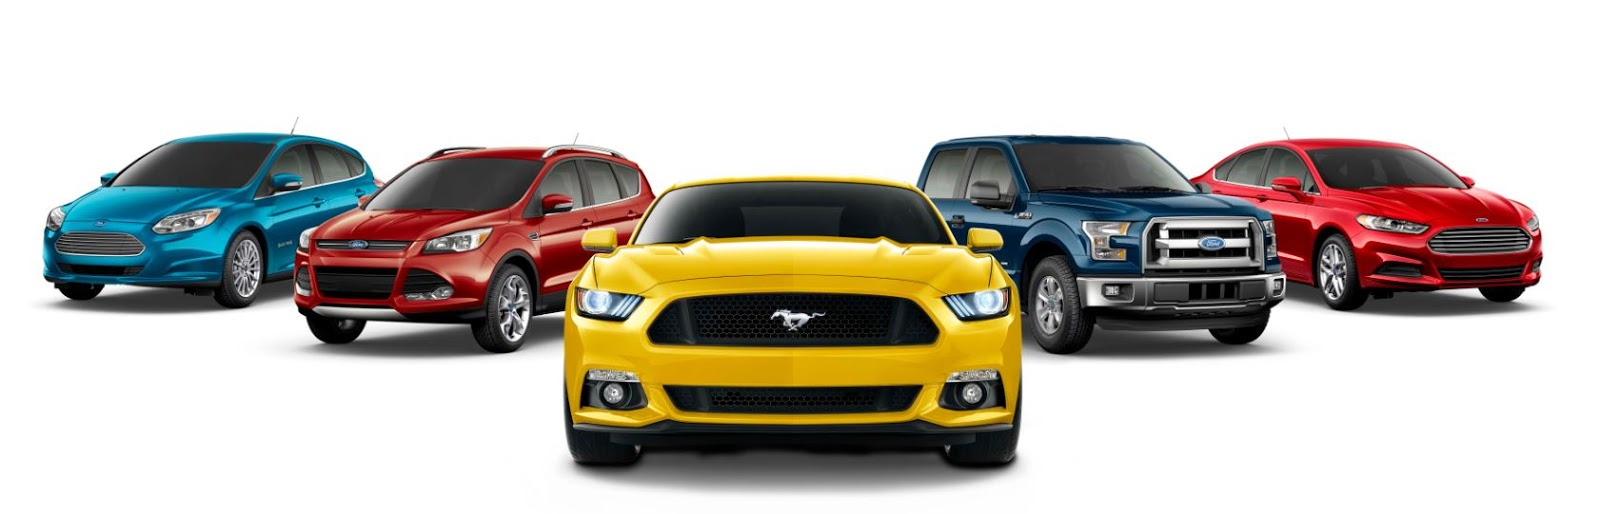 gresham ford your oregon ford dealership ford motor